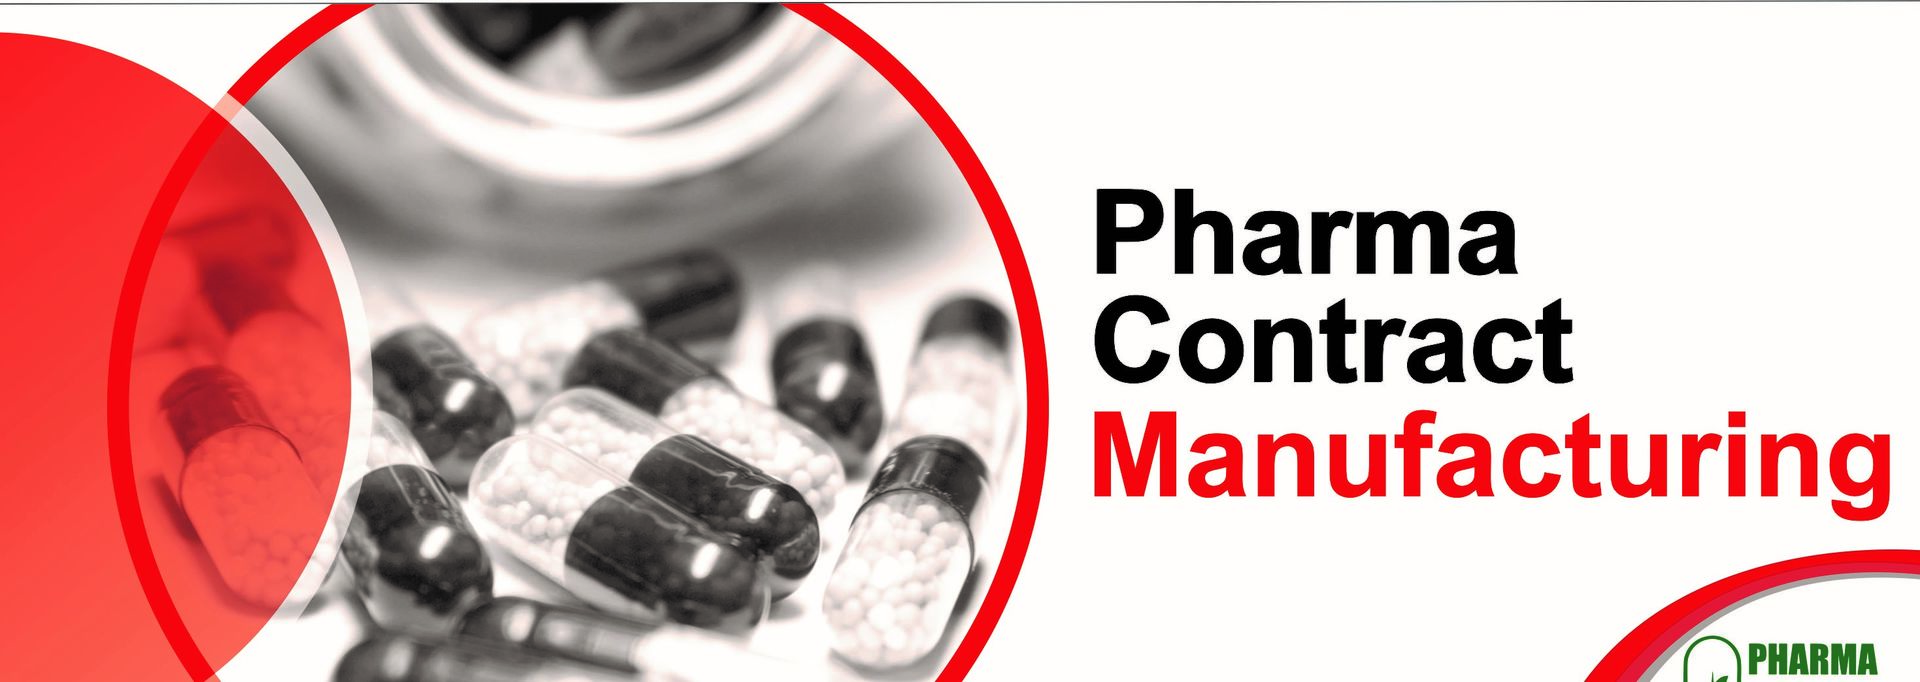 Pharma Contract Manufacturing Companies in India | FMCG Manufacturer